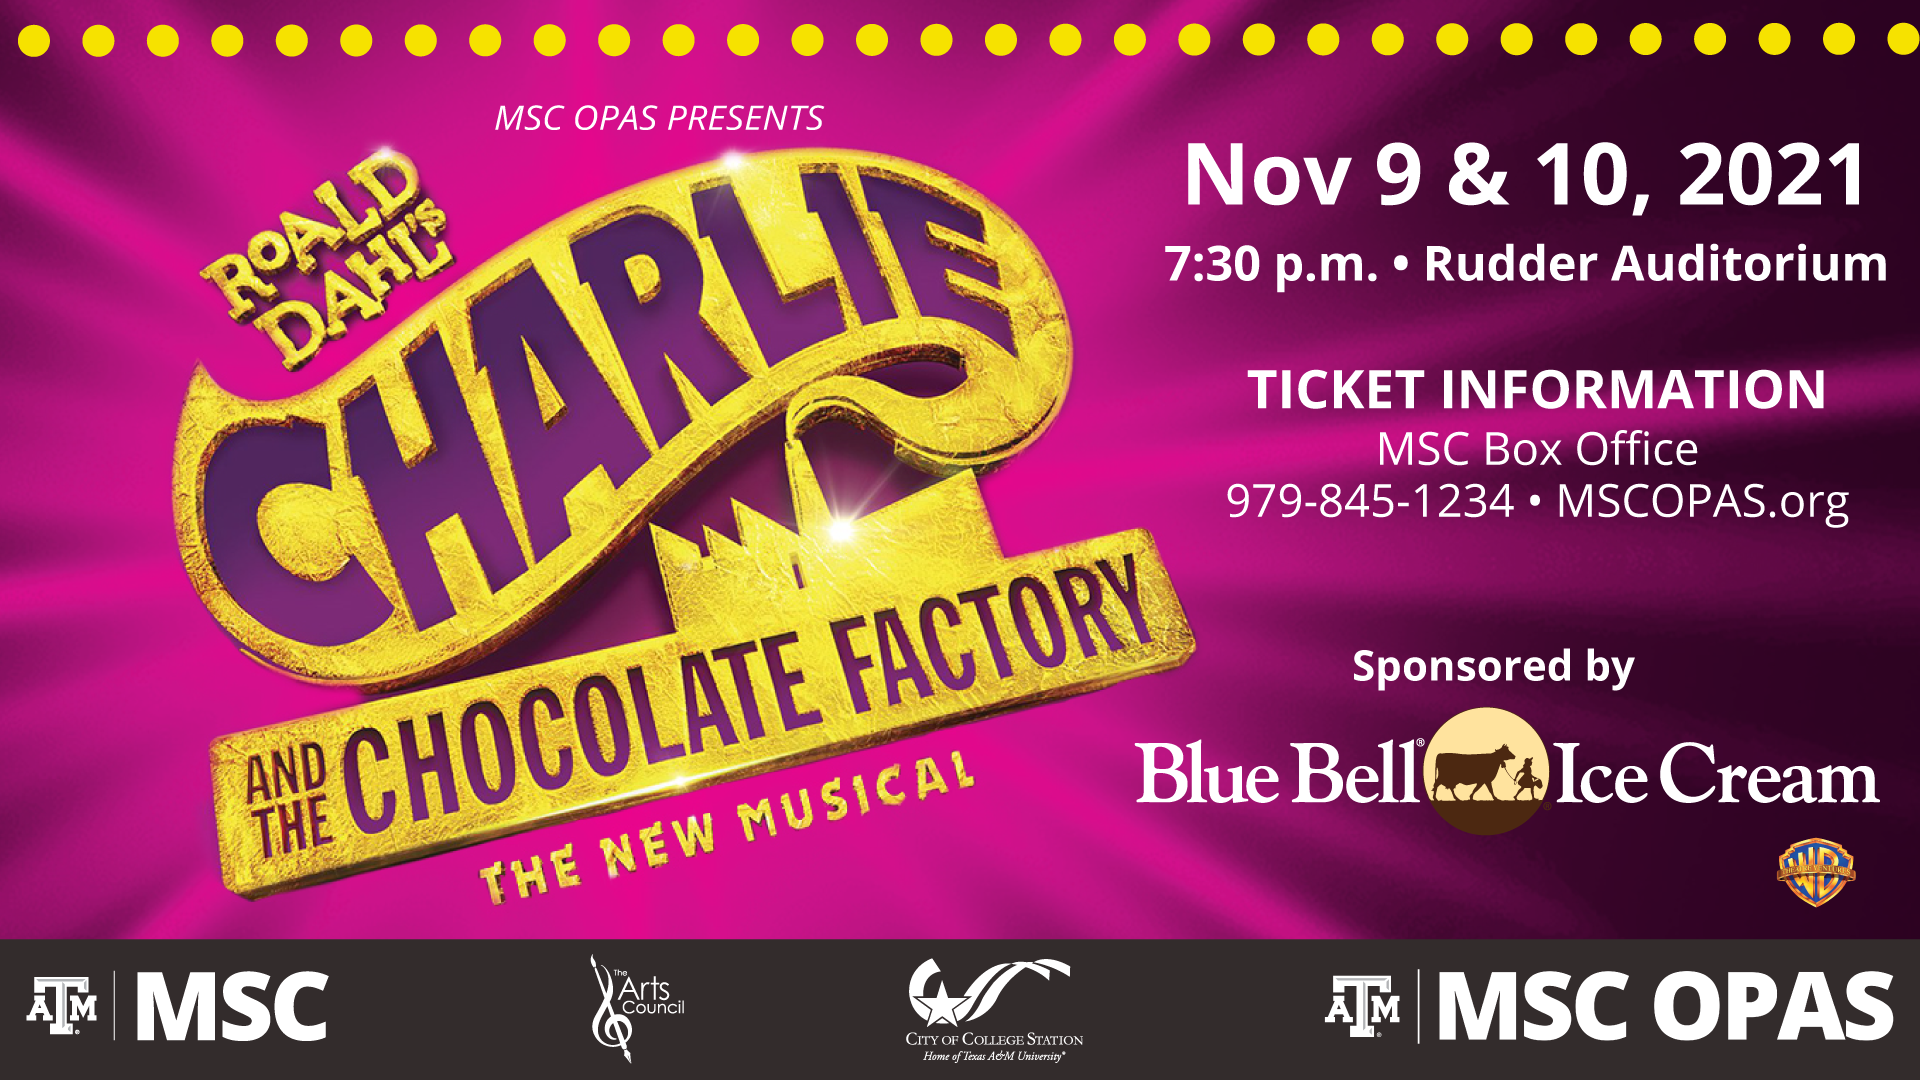 MSC OPAS Presents Roald Dahls's Charlie and the Chocolate Factory, The New Musical. Sponsored by Blue Bell Ice Cream. November 9 and 10, 2021. at 7:30 p.m. at the Rudder Auditorium. Ticket Information: MSC Box Office Phone: 979.845.1234. Website: mscopas.org